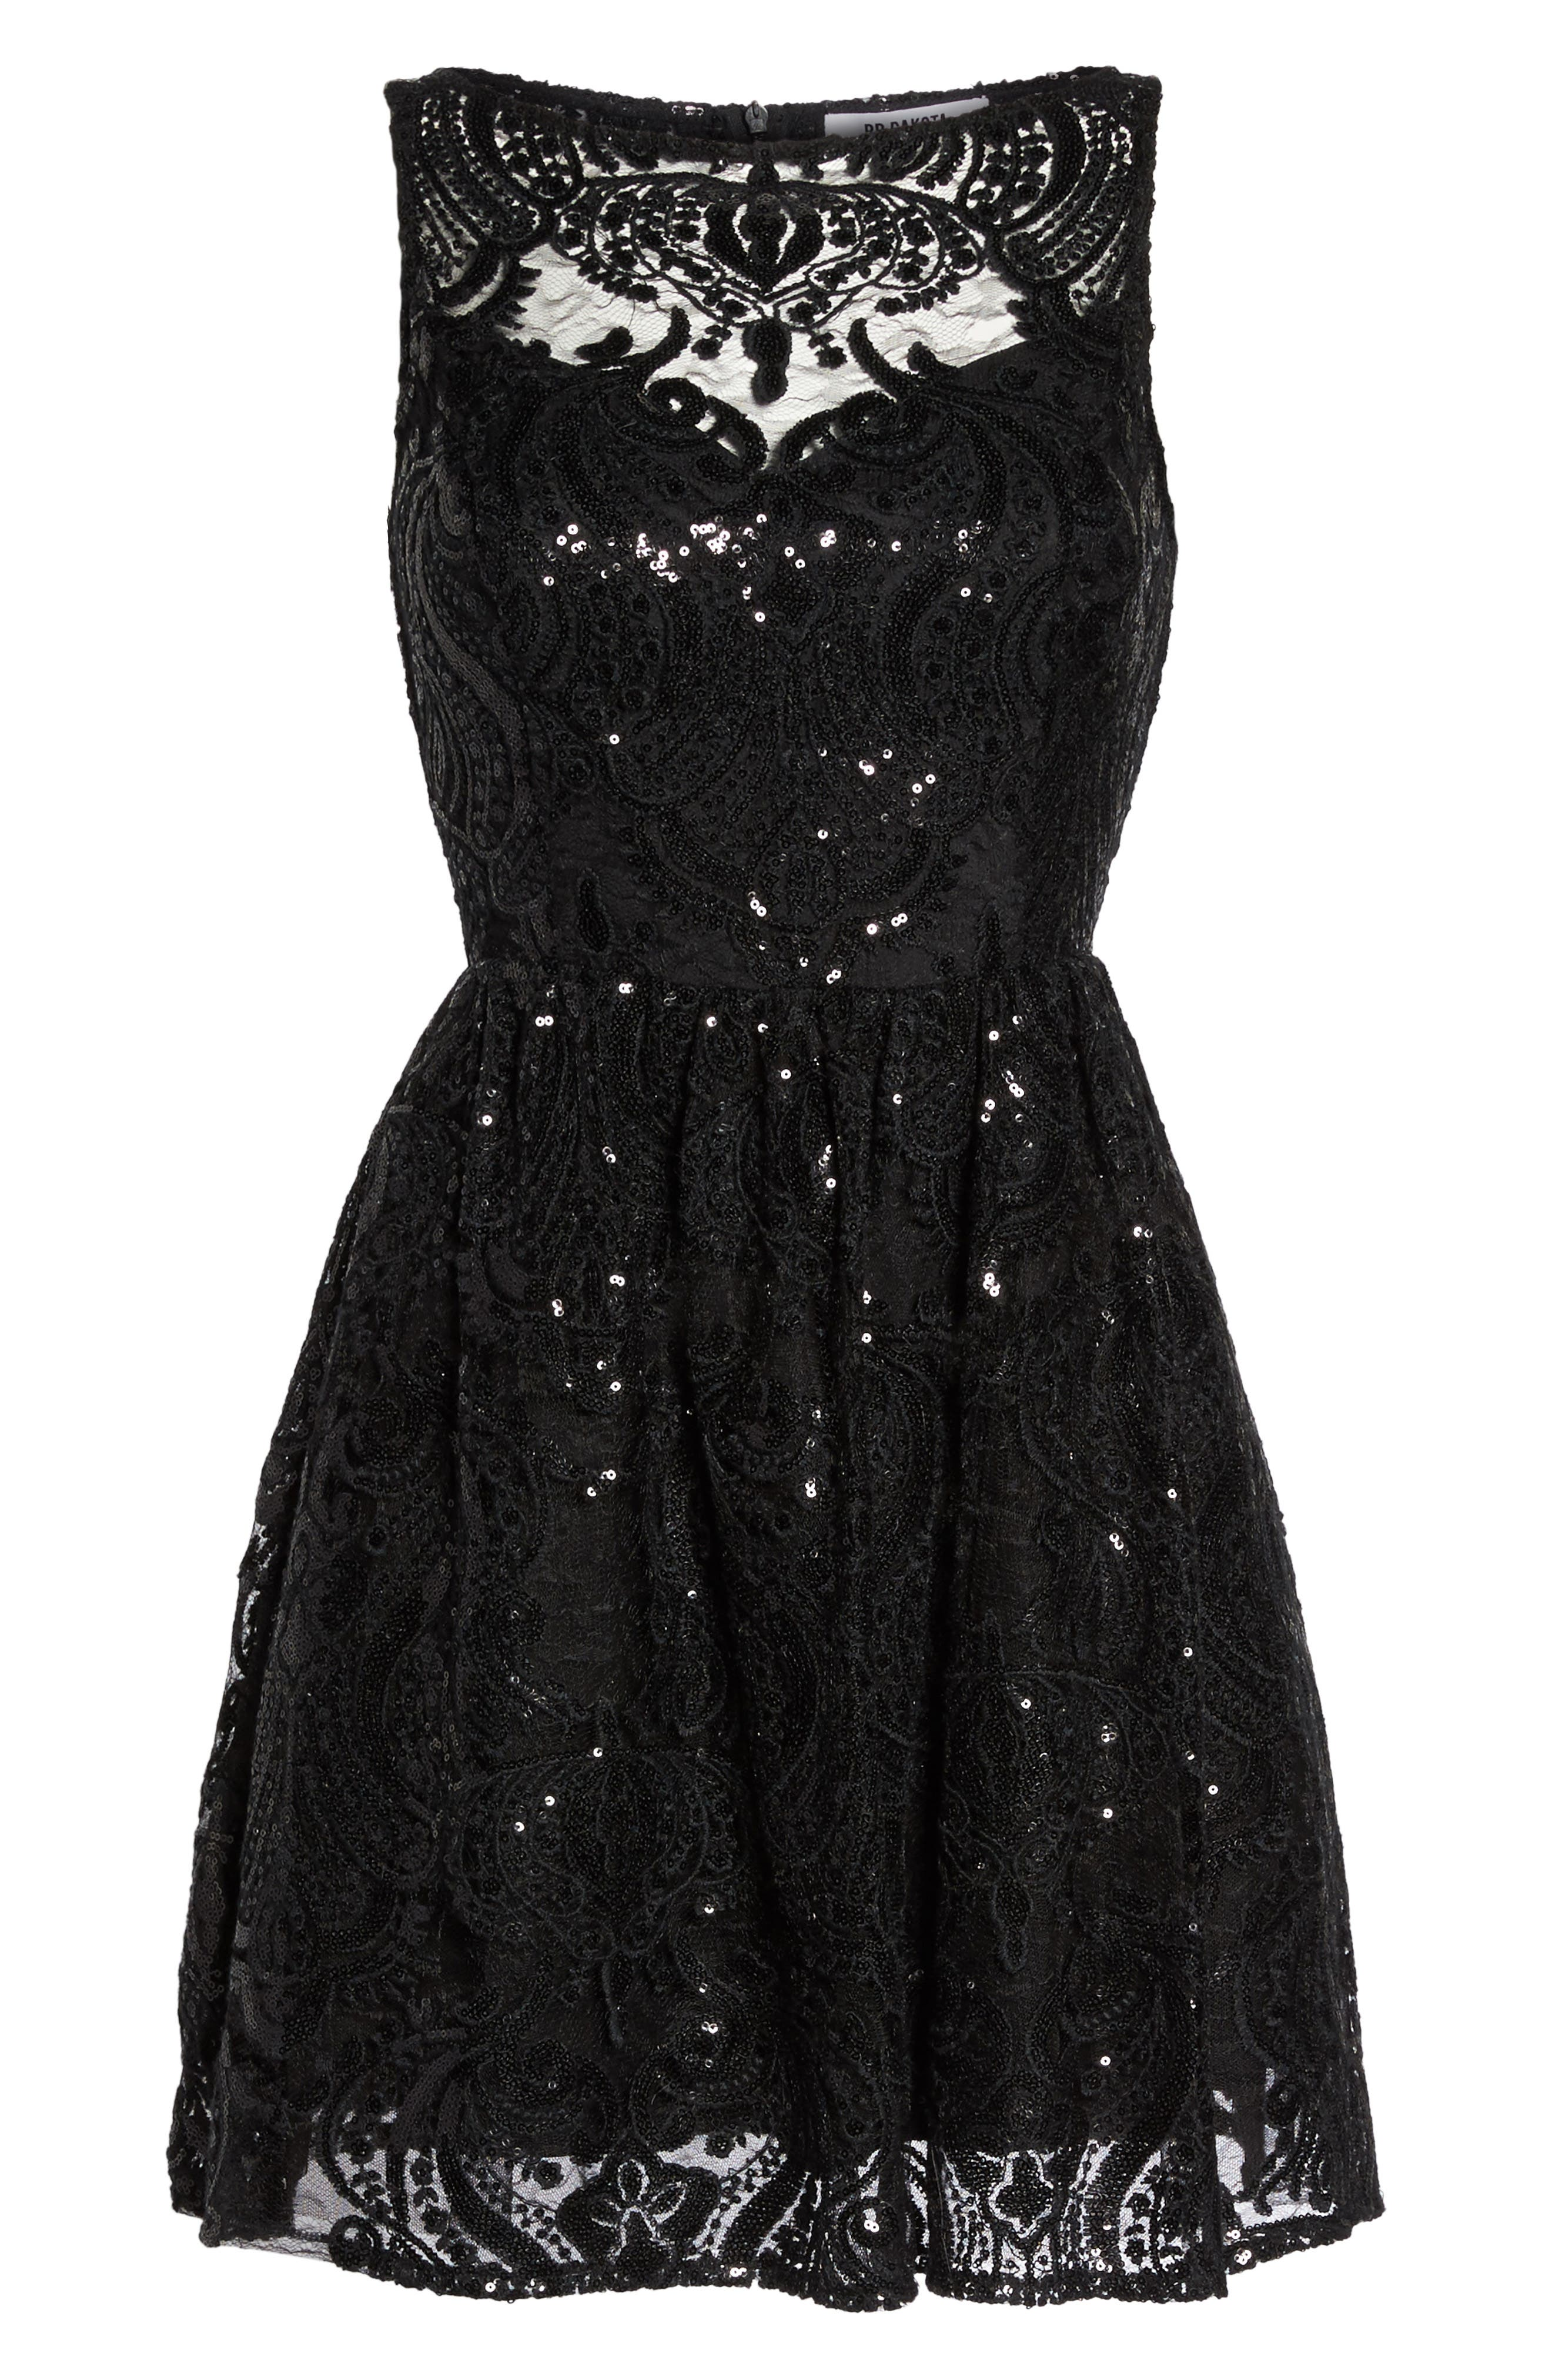 Tate Sequin Fit & Flare Dress,                             Alternate thumbnail 6, color,                             001